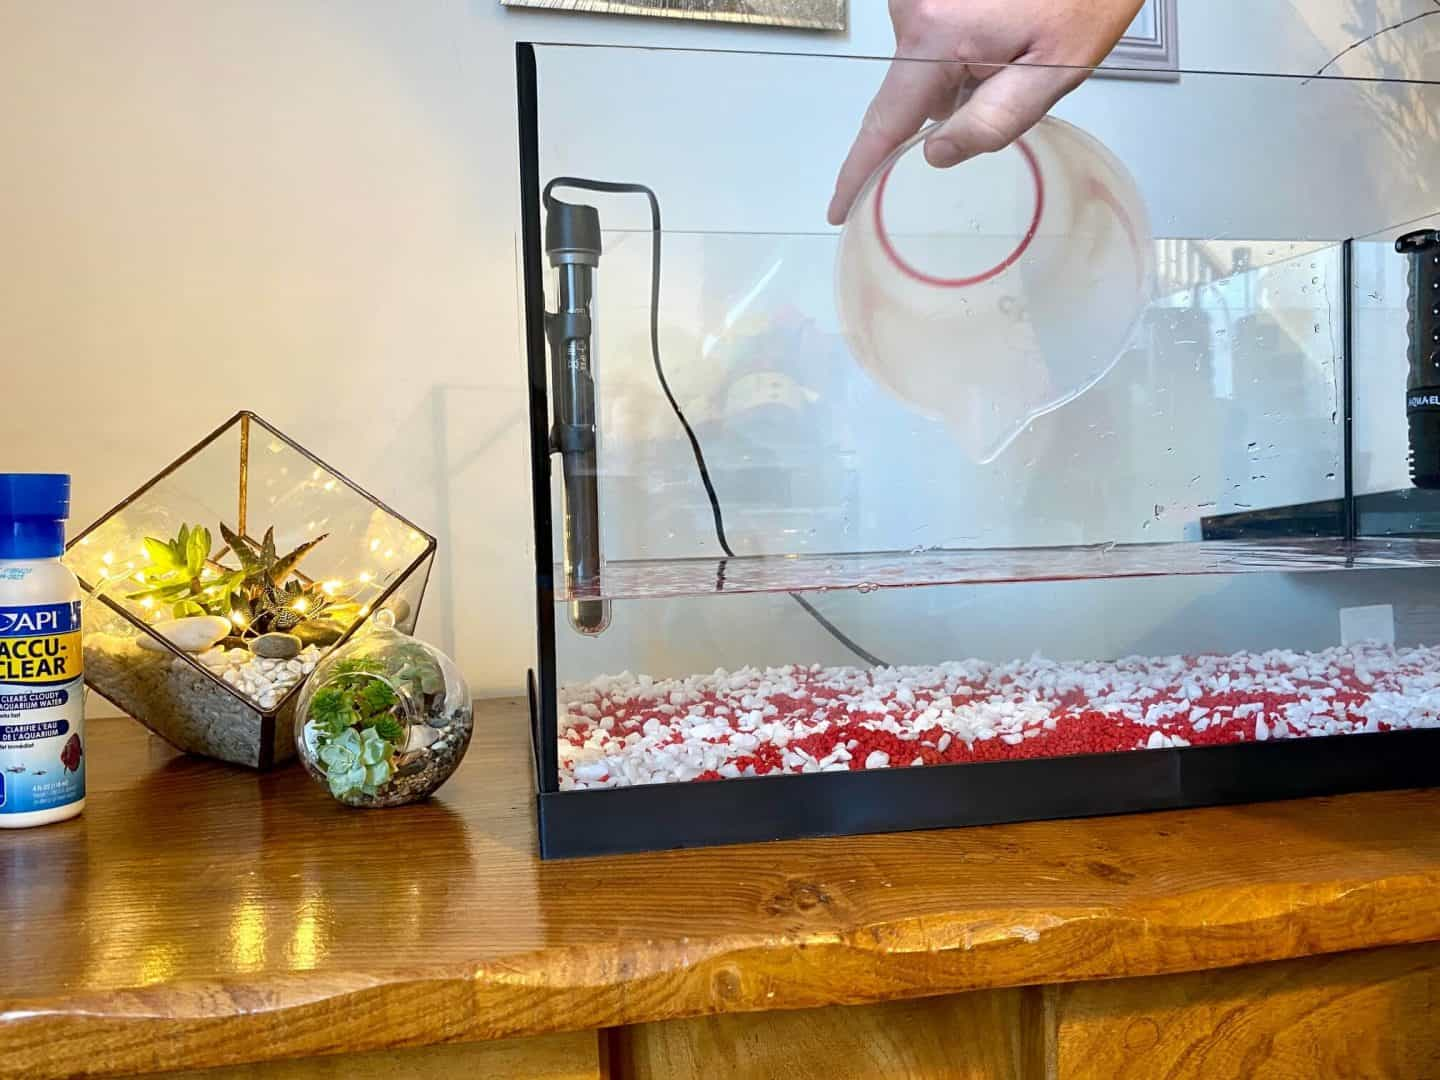 Adding water into a fish tank